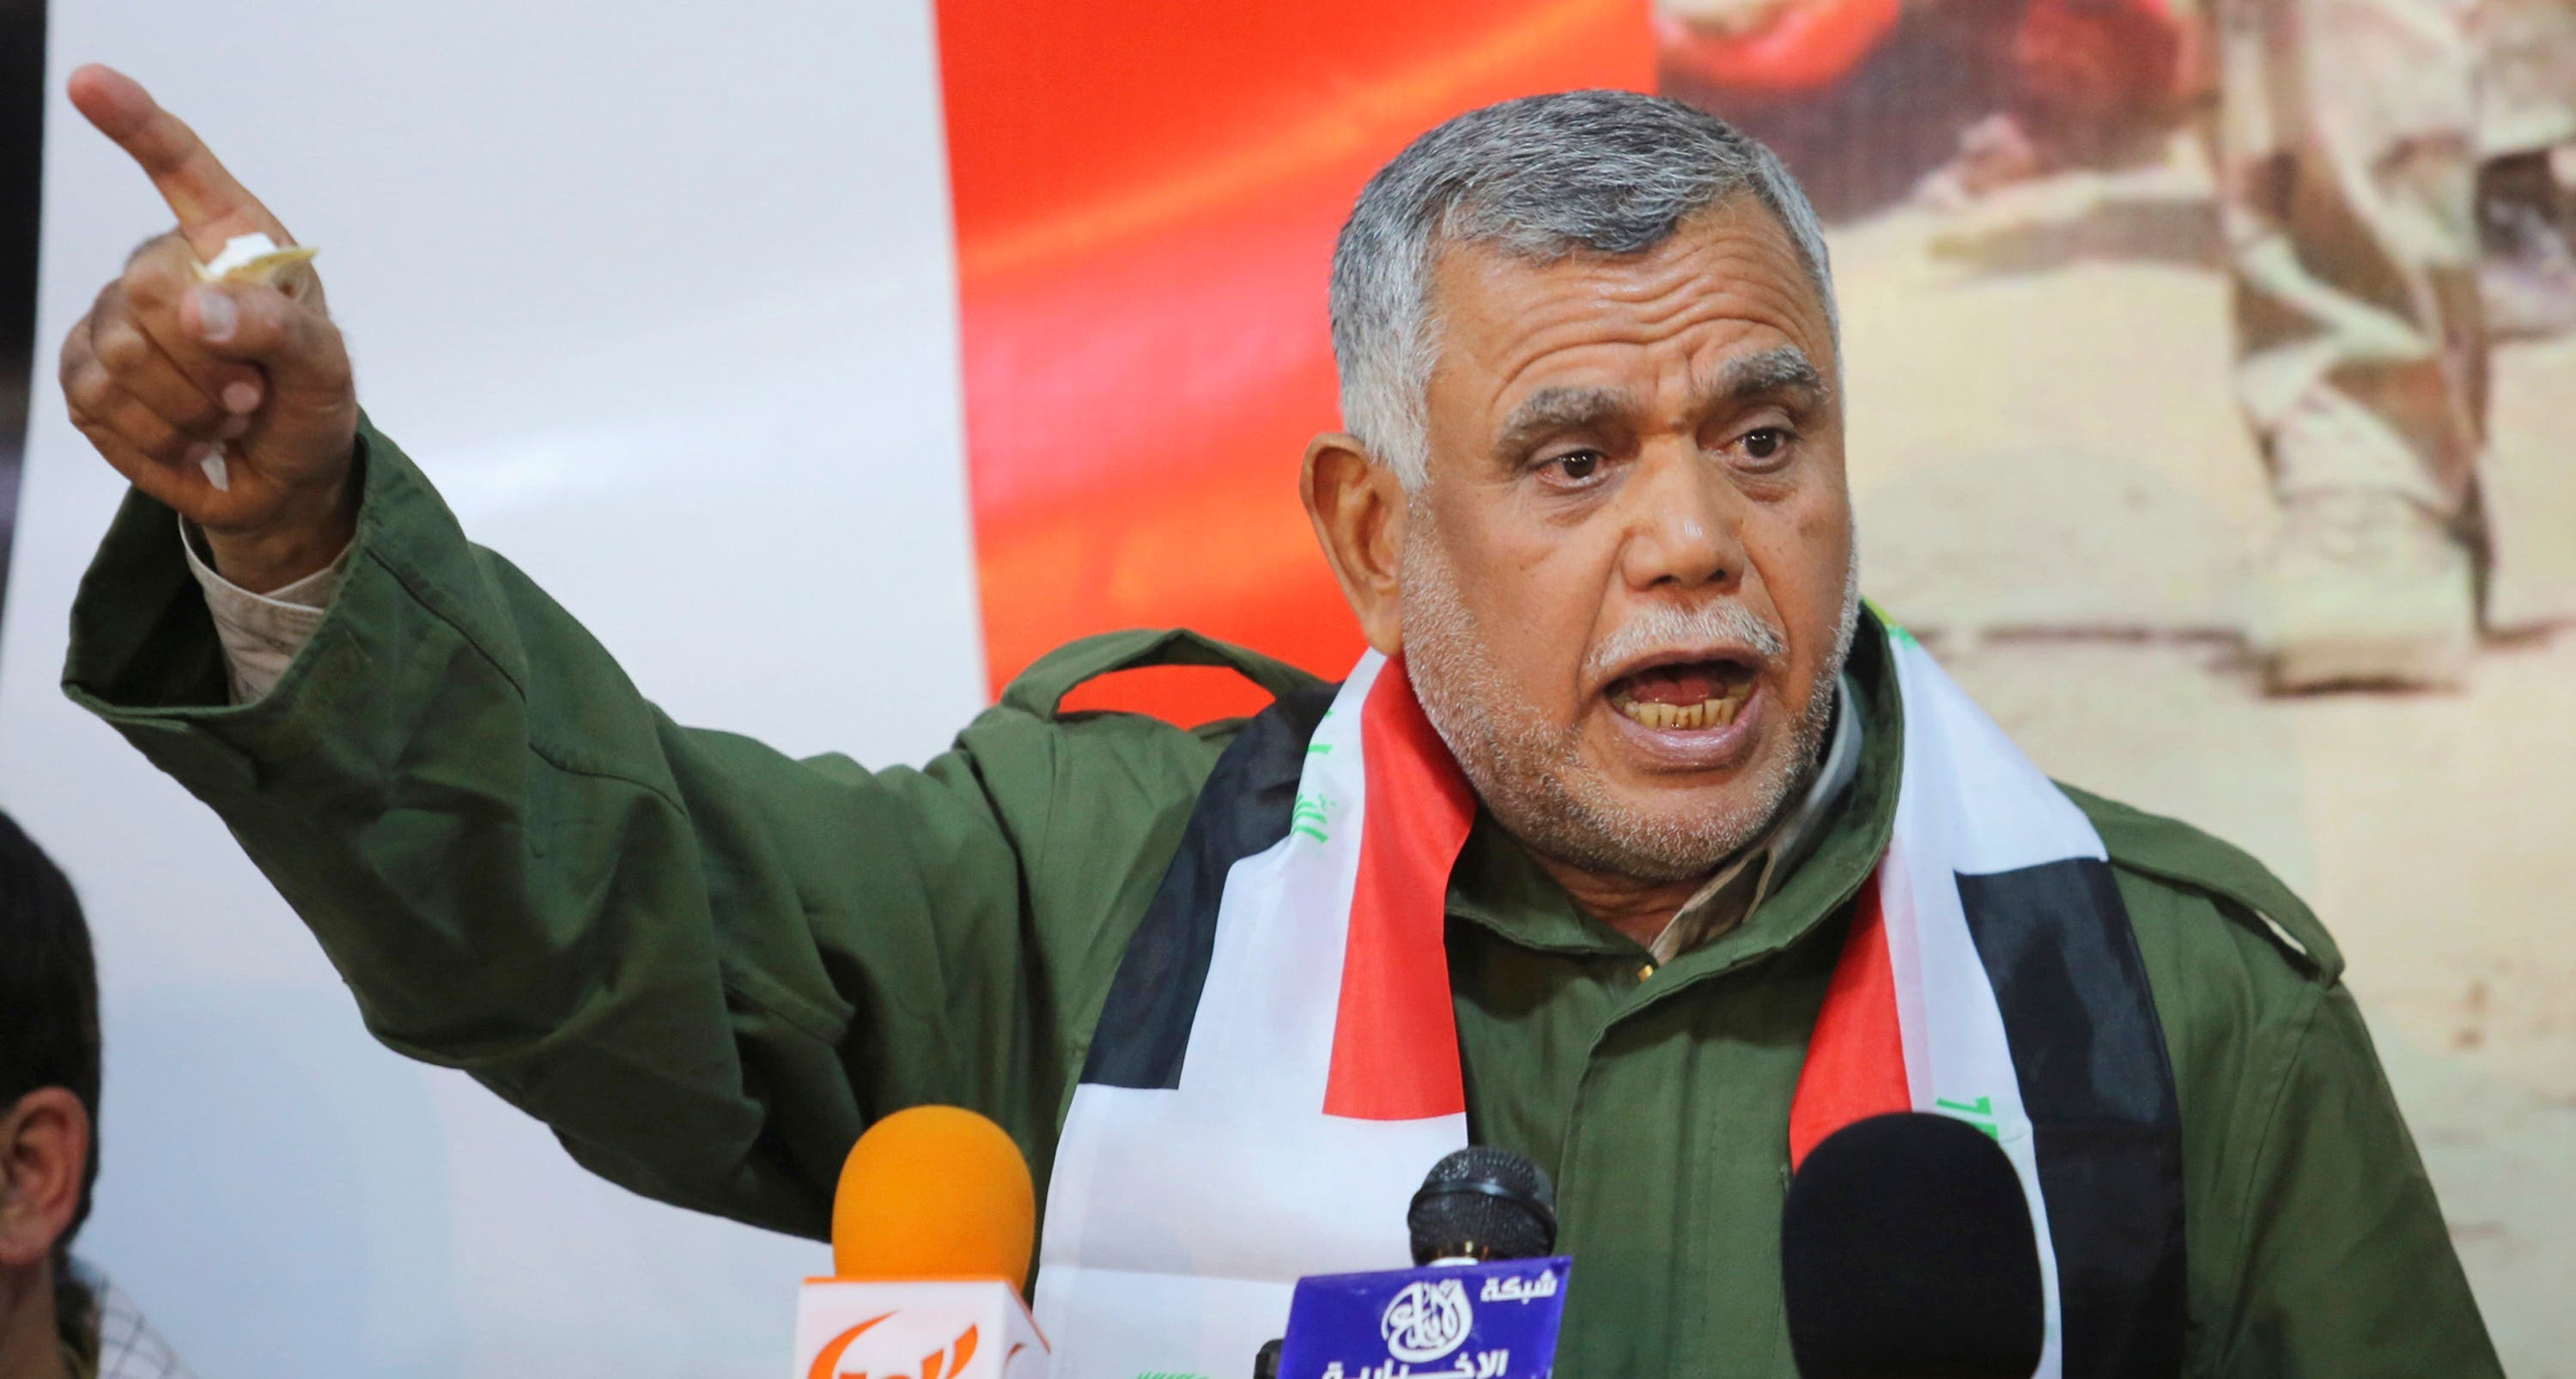 Head of the Badr Organisation Hadi al-Amiri speaks during a news conference on the outskirts of Diyala province, north of Baghdad February 2, 2015. Picture taken February 2, 2015. (Reuters)